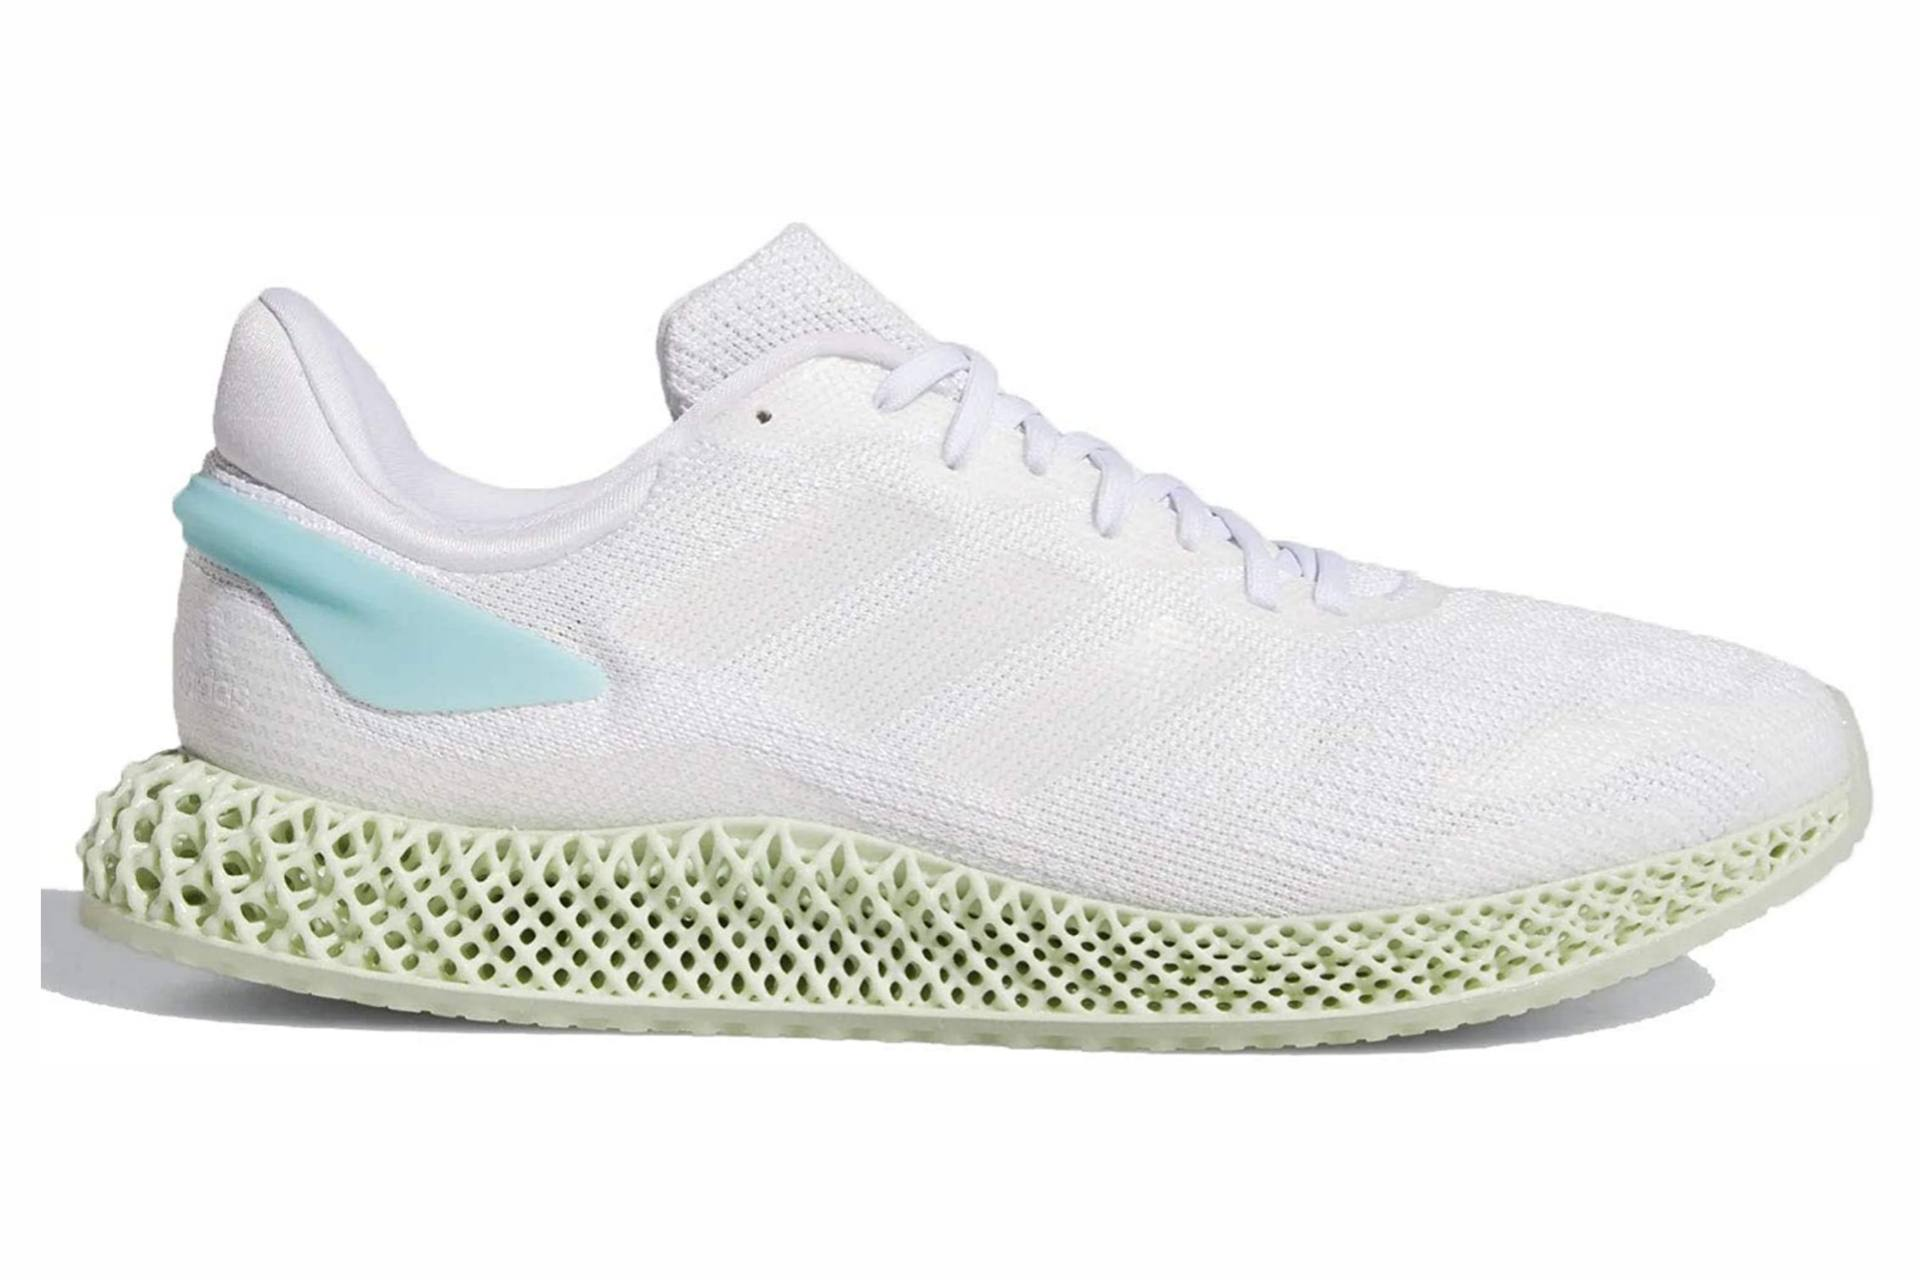 Adidas sneaker made from ocean waste